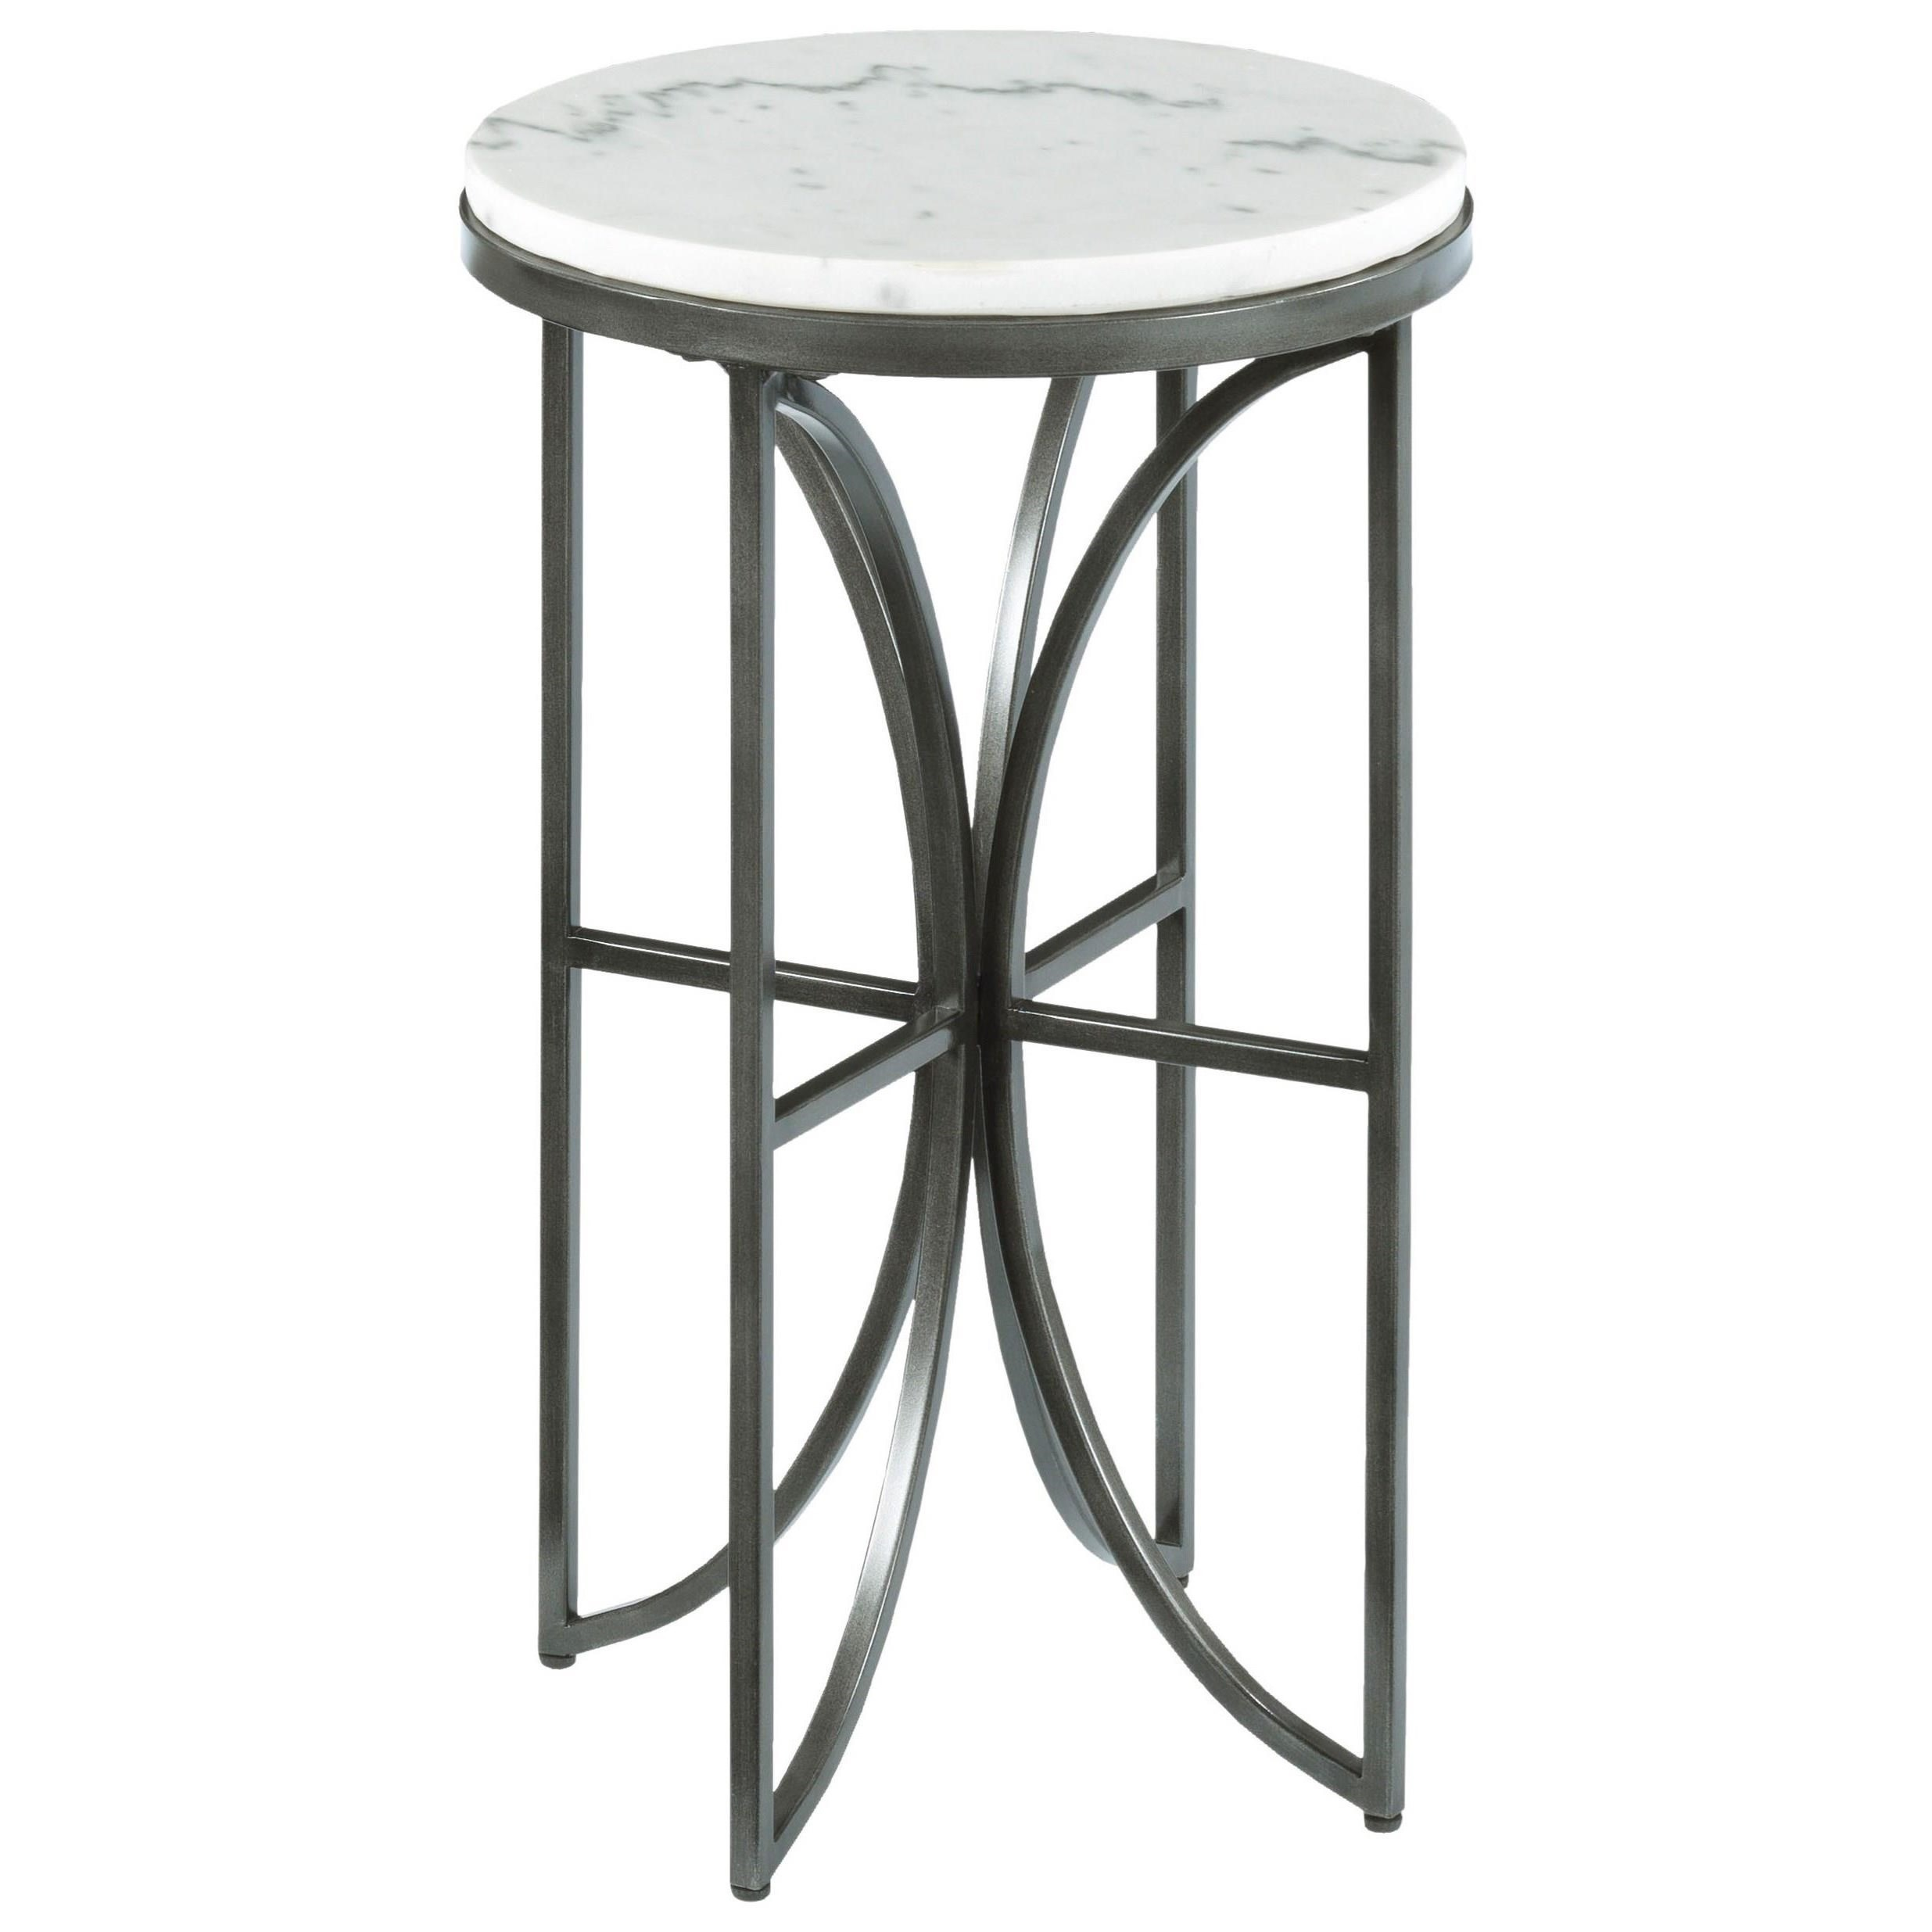 small round accent table with marble top hammary wolf and products color impact glass tall kitchen chairs front hall furniture moving pads antique coffee outdoor sofa dining set